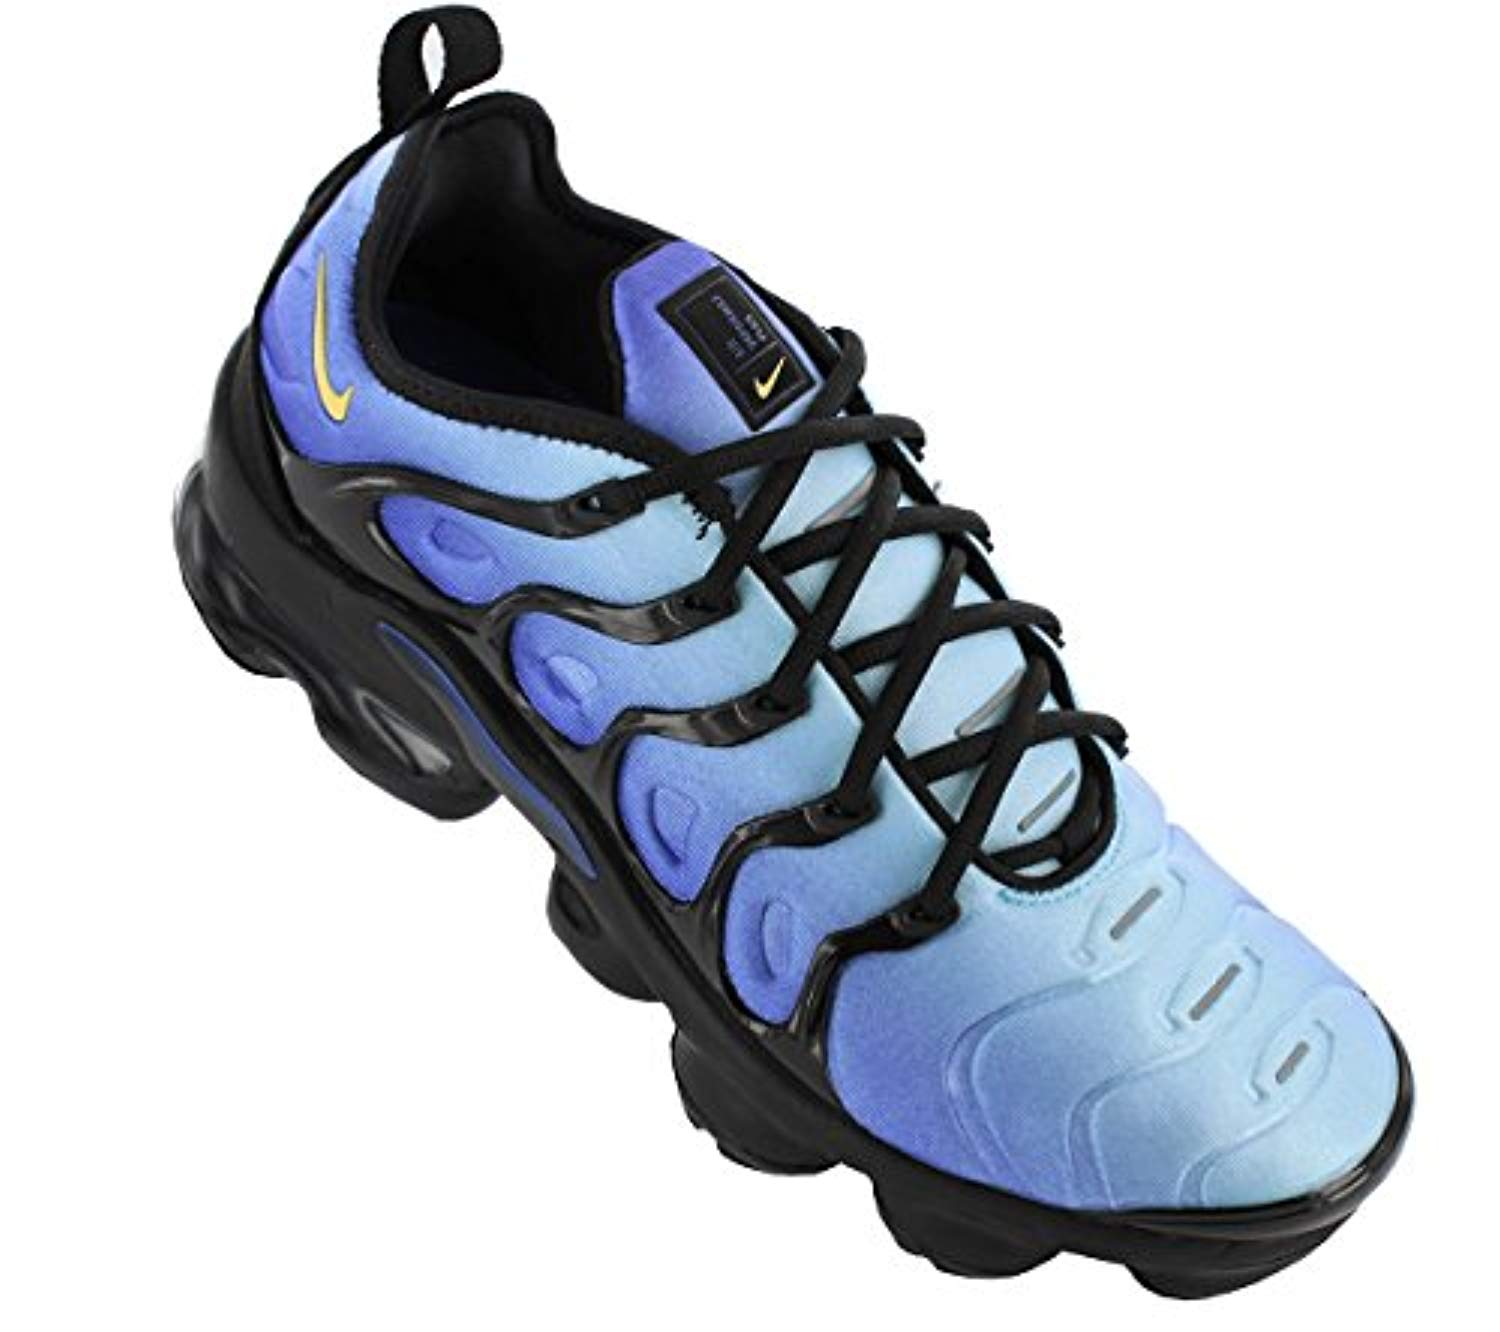 53023f18a684 310 NIKE Mens Air Vapormax Plus Black Hyper Blue – kicks closet nyc